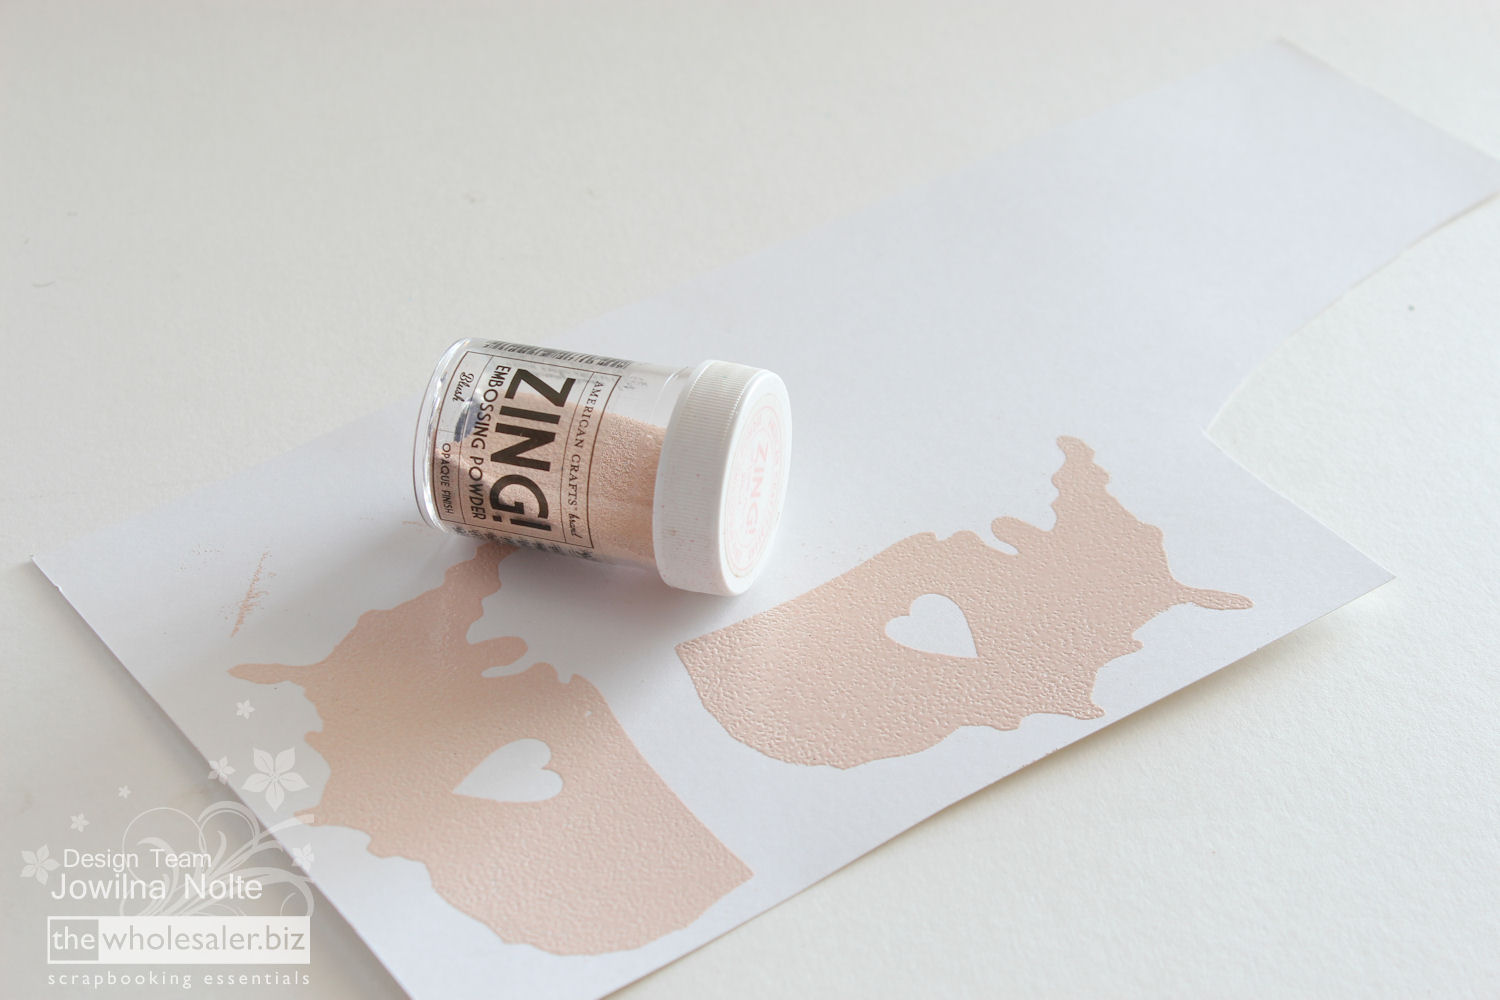 Silhouette Stamp Material - Stamping Step 2